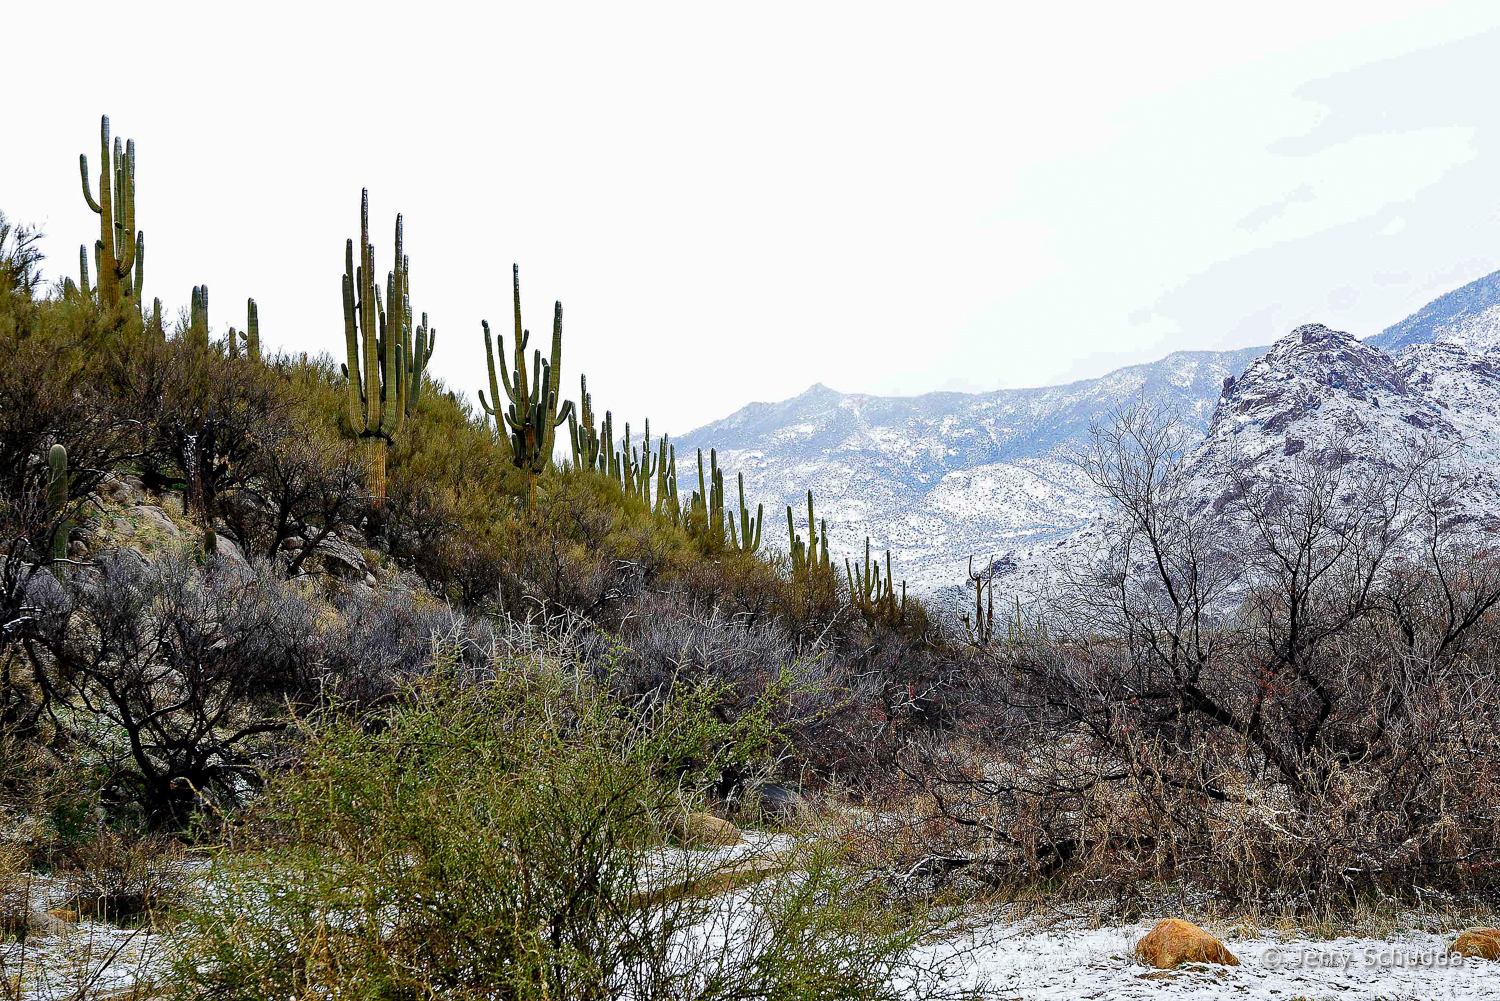 A rare dusting of snow in the lower Catalina Mountains near Tucson ...